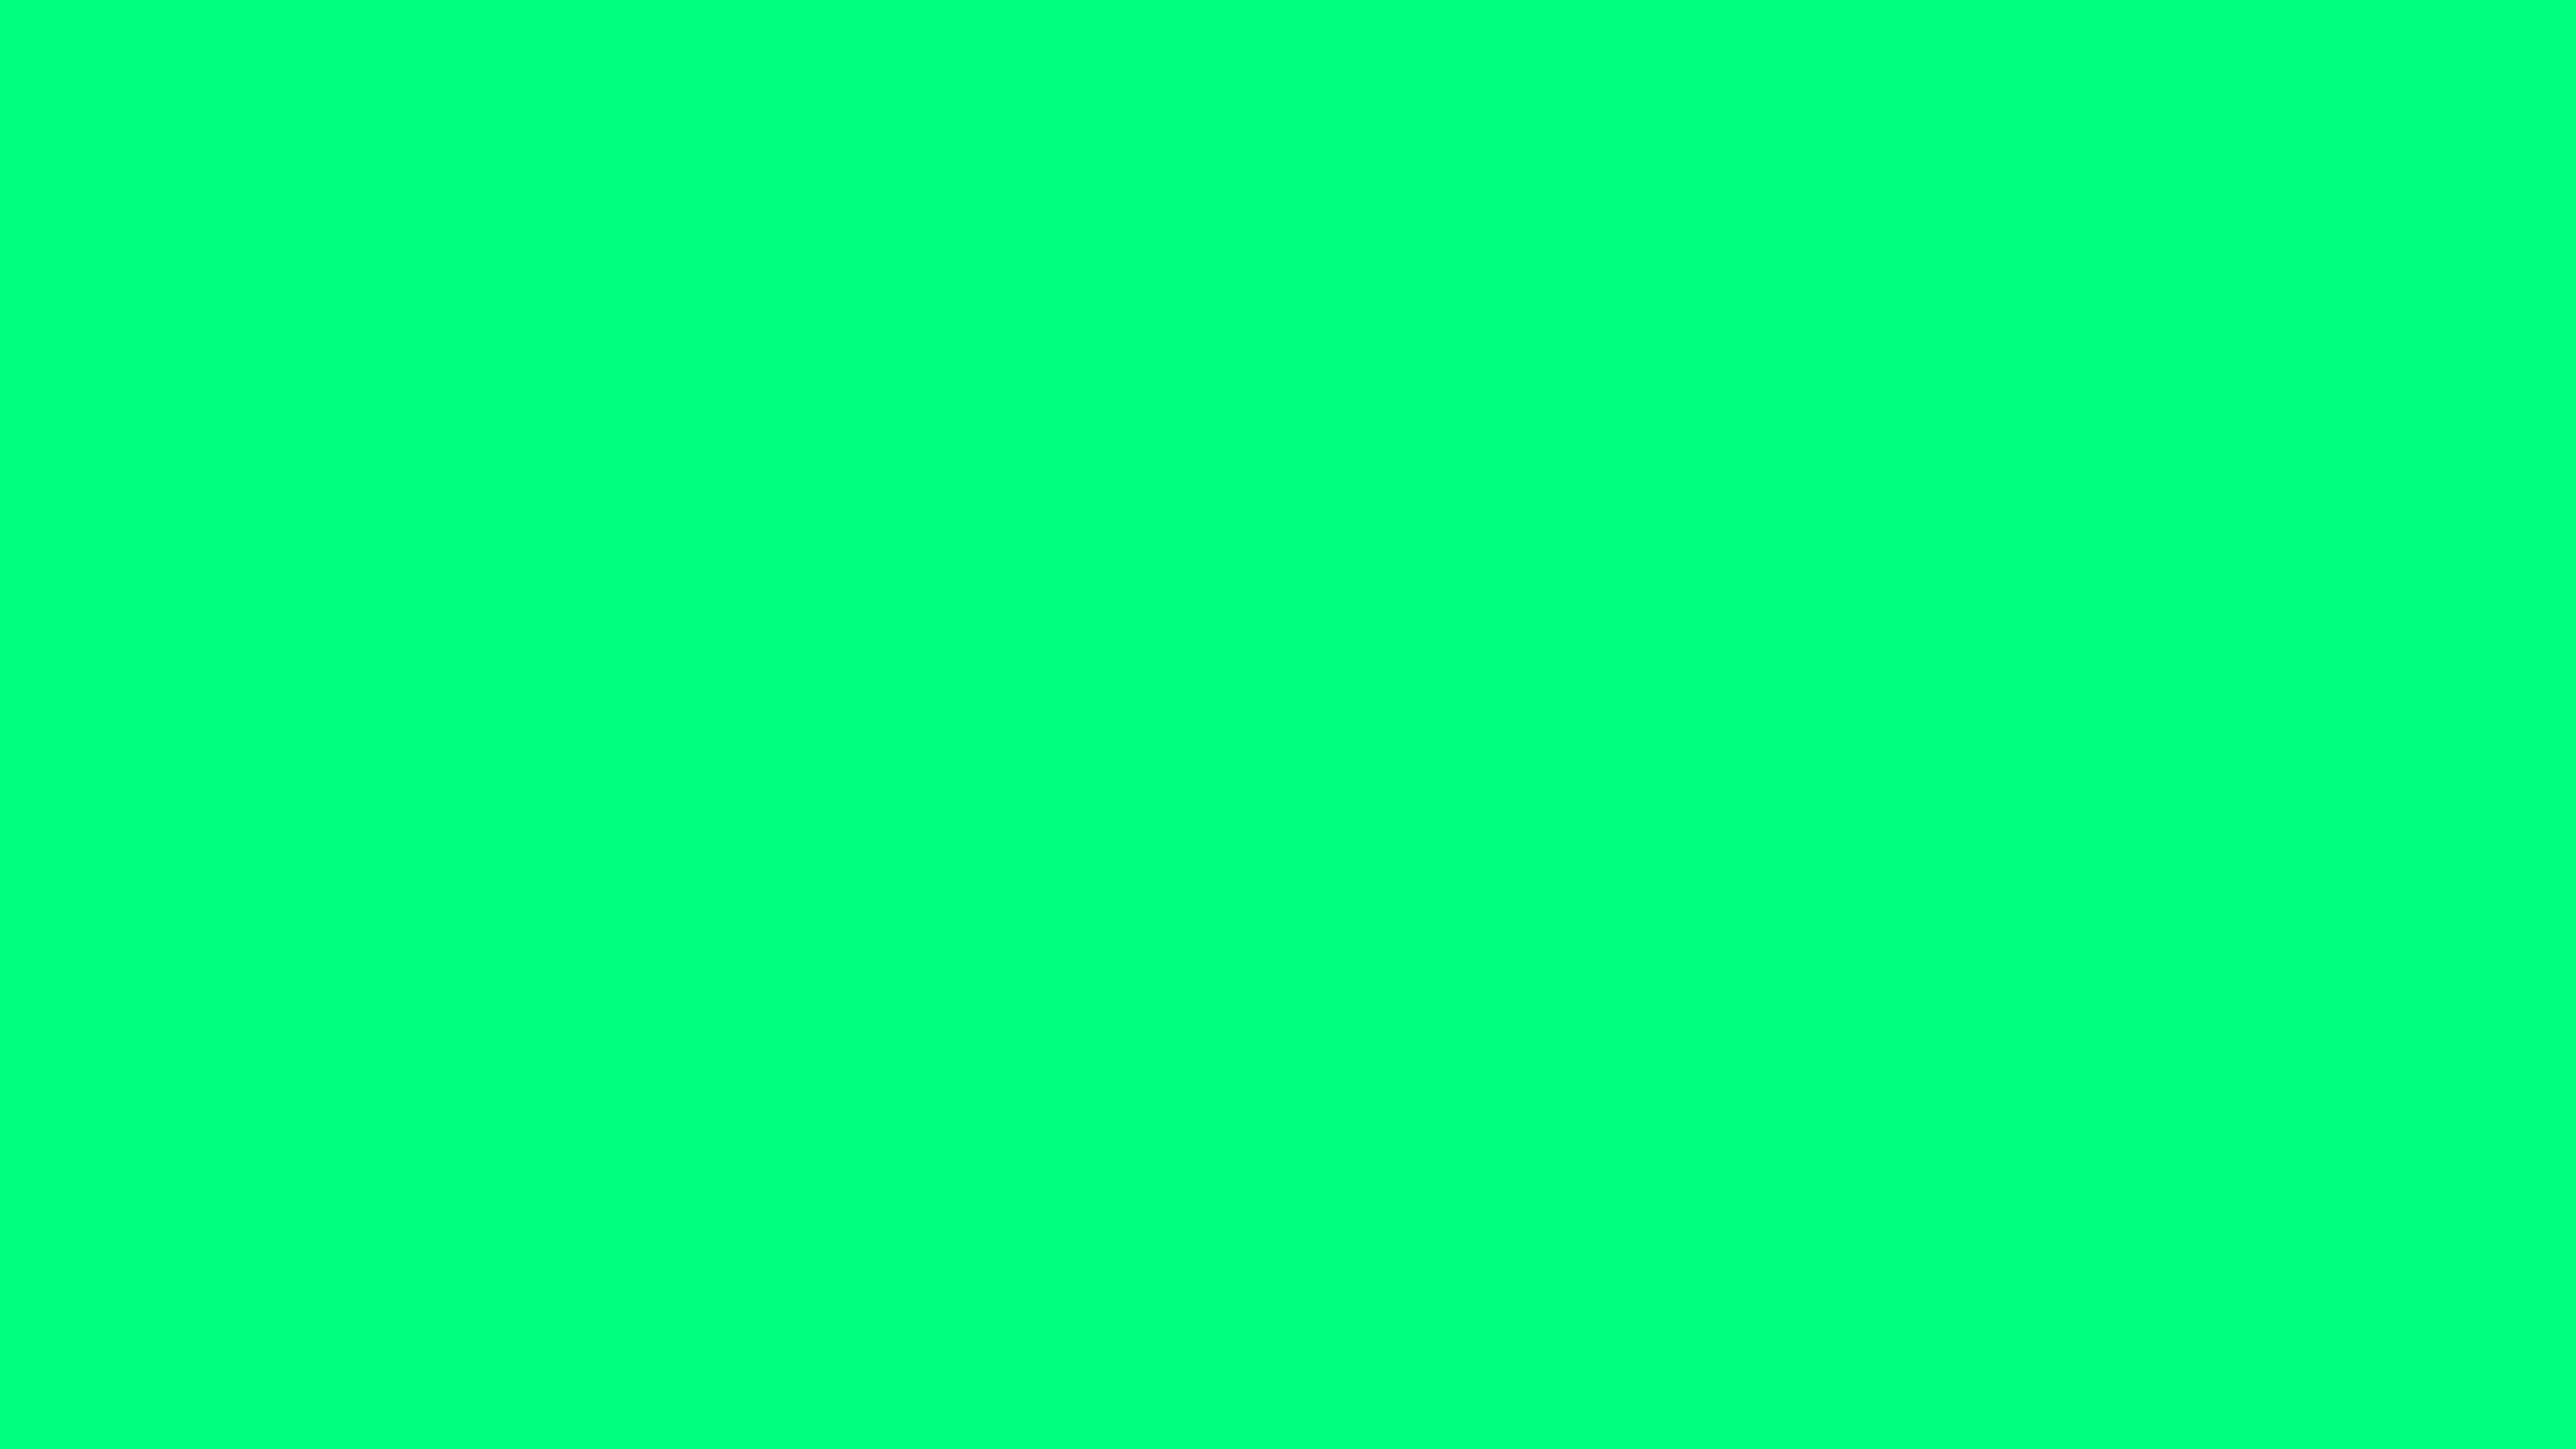 5120x2880 Spring Green Solid Color Background